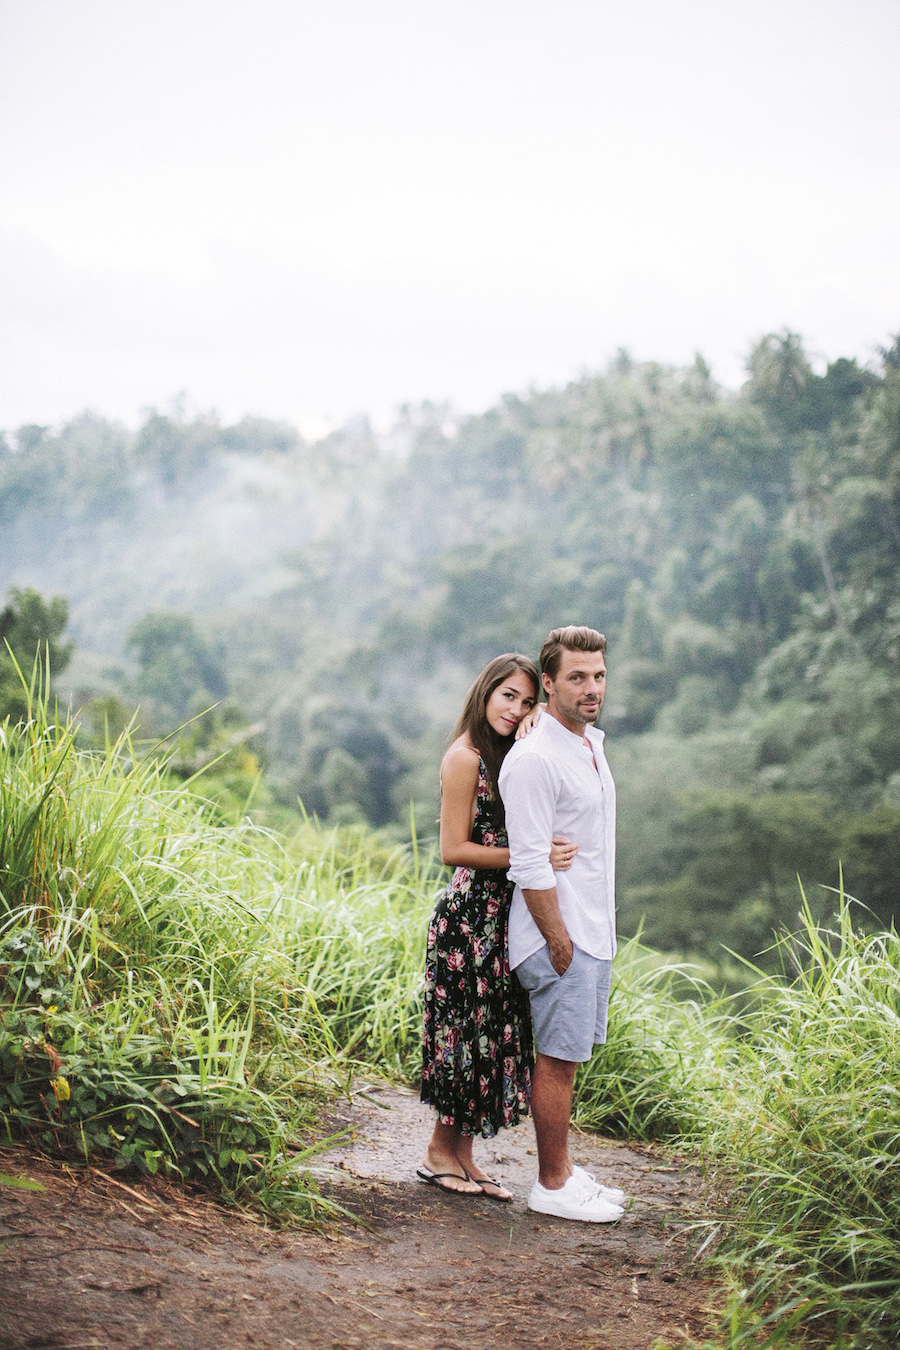 saya-photography-pre-wedding-bali-rice-field-12.jpg